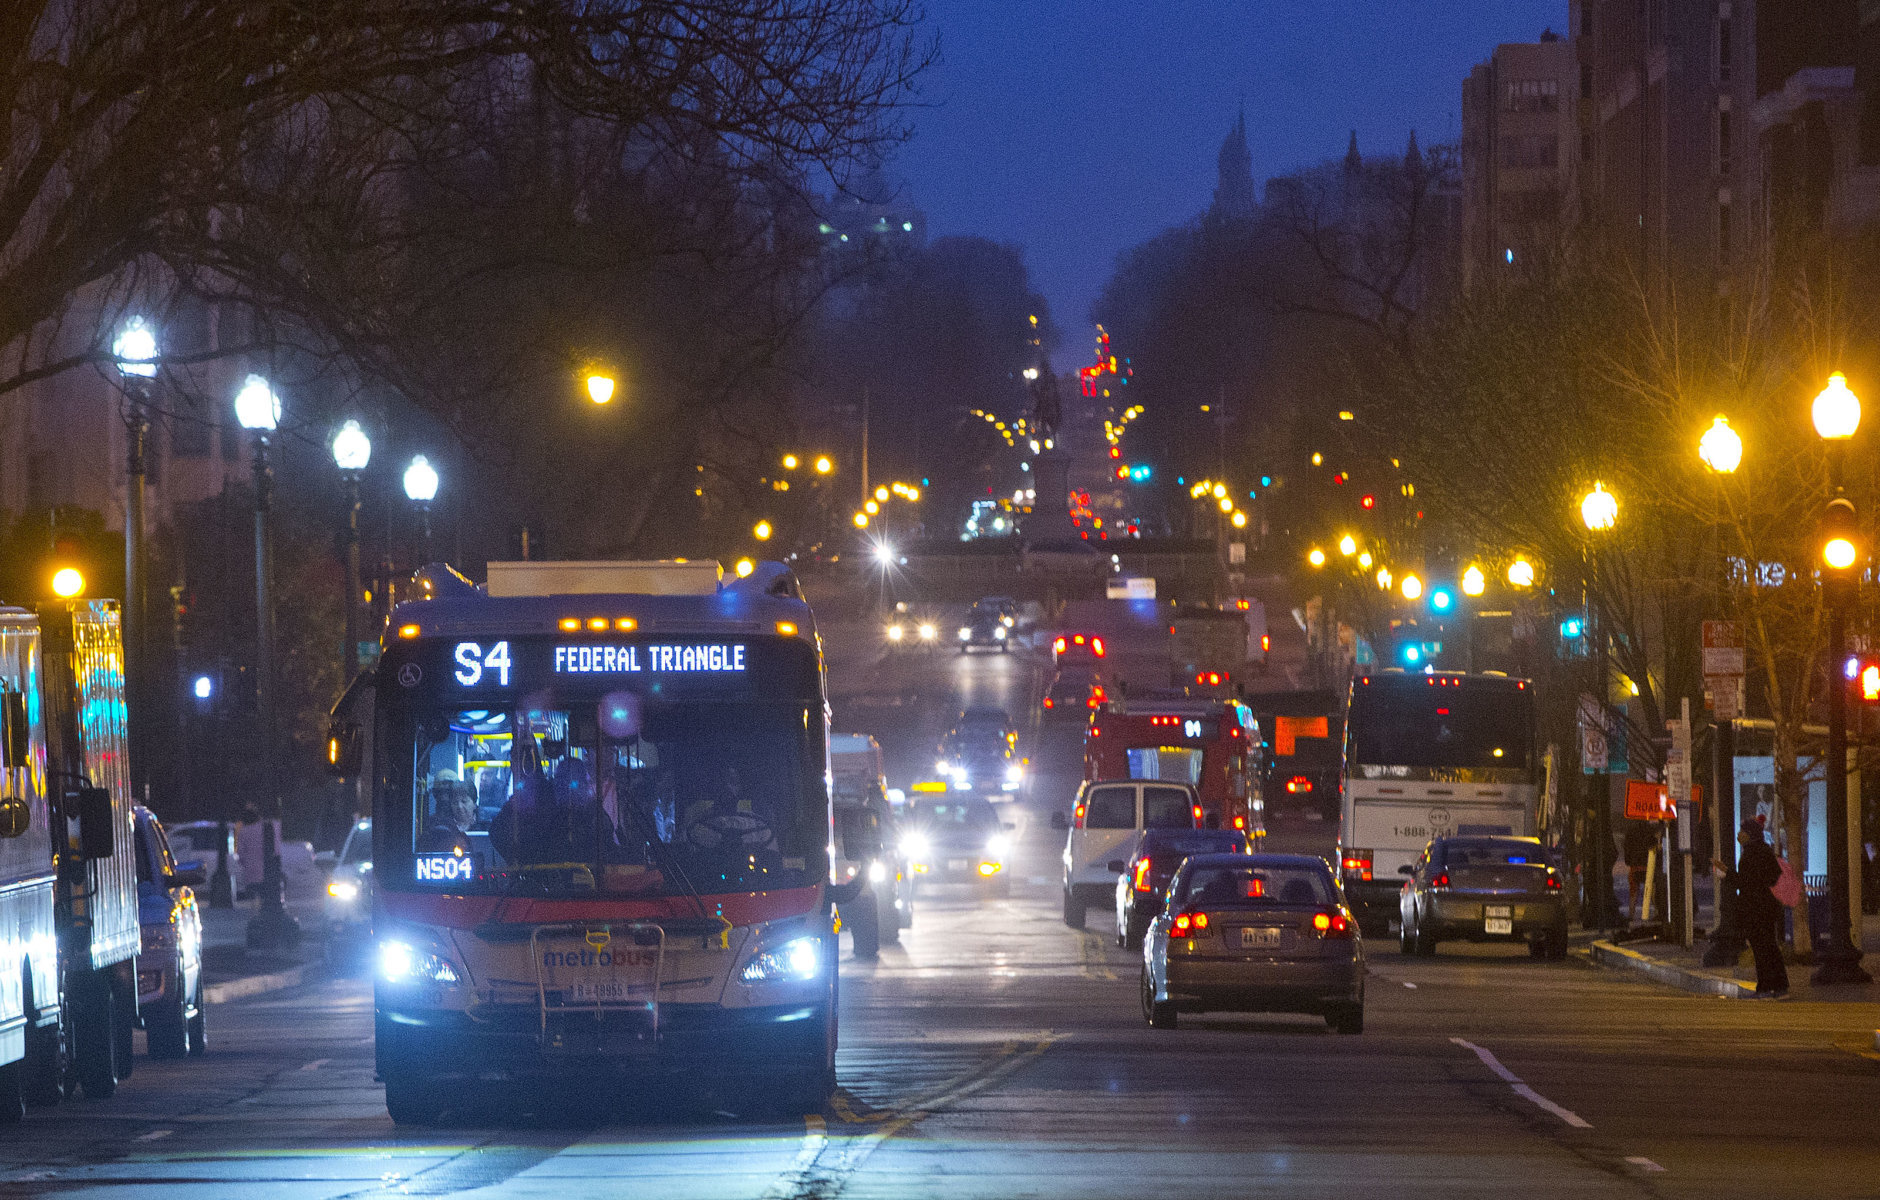 A Metrobus makes its way down 16th Street in downtown D.C., Wednesday, March 16, 2016. (AP Photo/Pablo Martinez Monsivais)